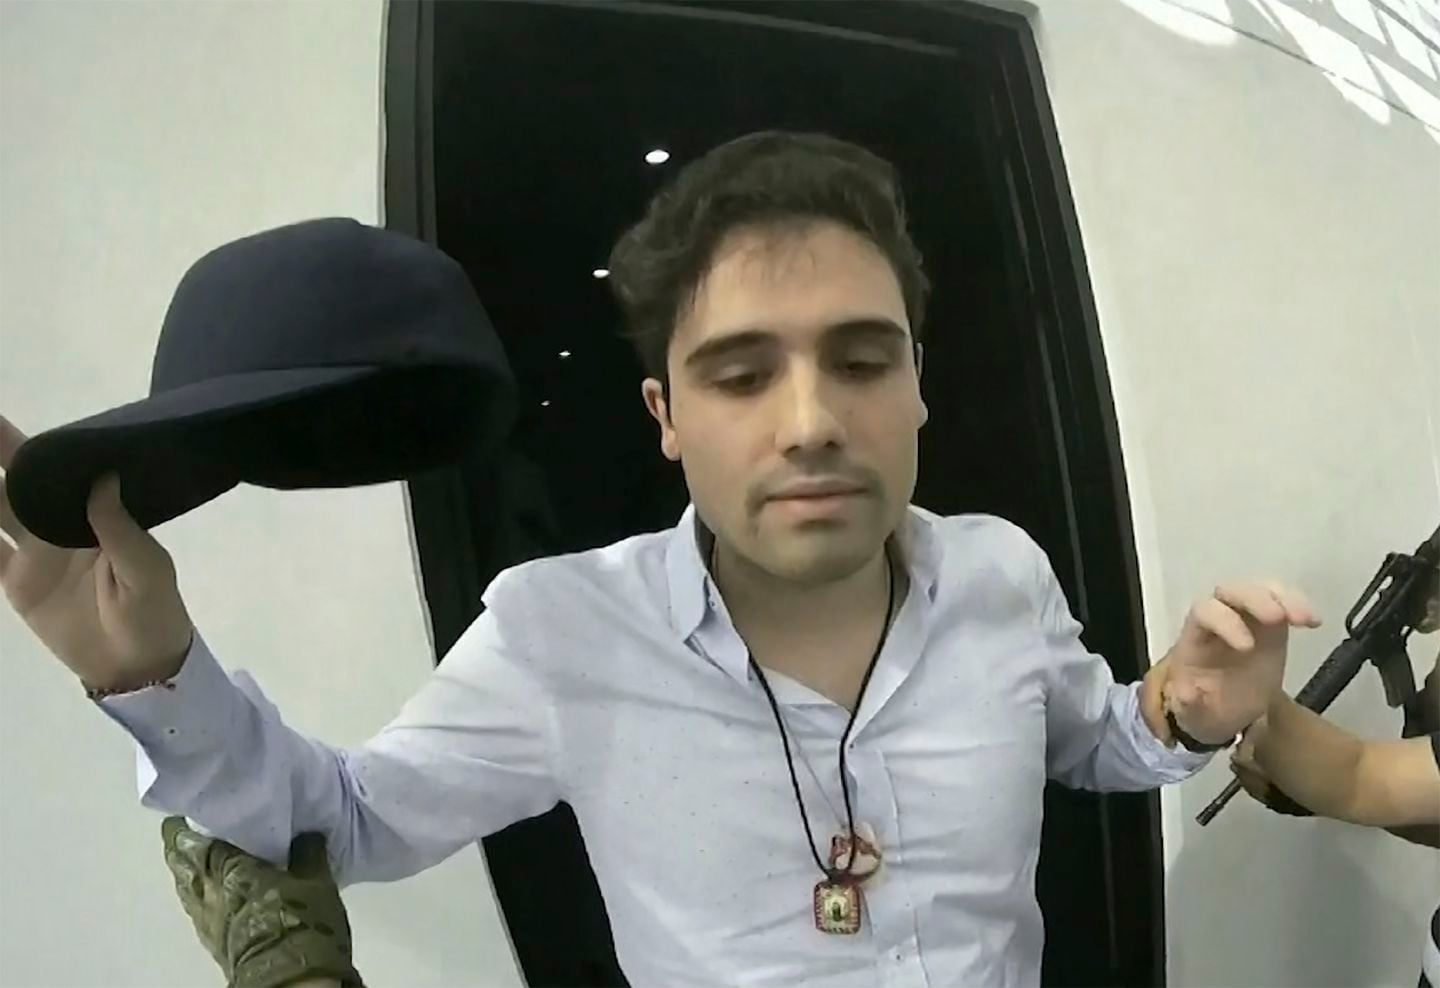 A new behind-the-scenes video shows how badly Mexico blundered in its  failed effort to arrest El Chapo's son   El chapo, El chapo guzmán, Mexican  army